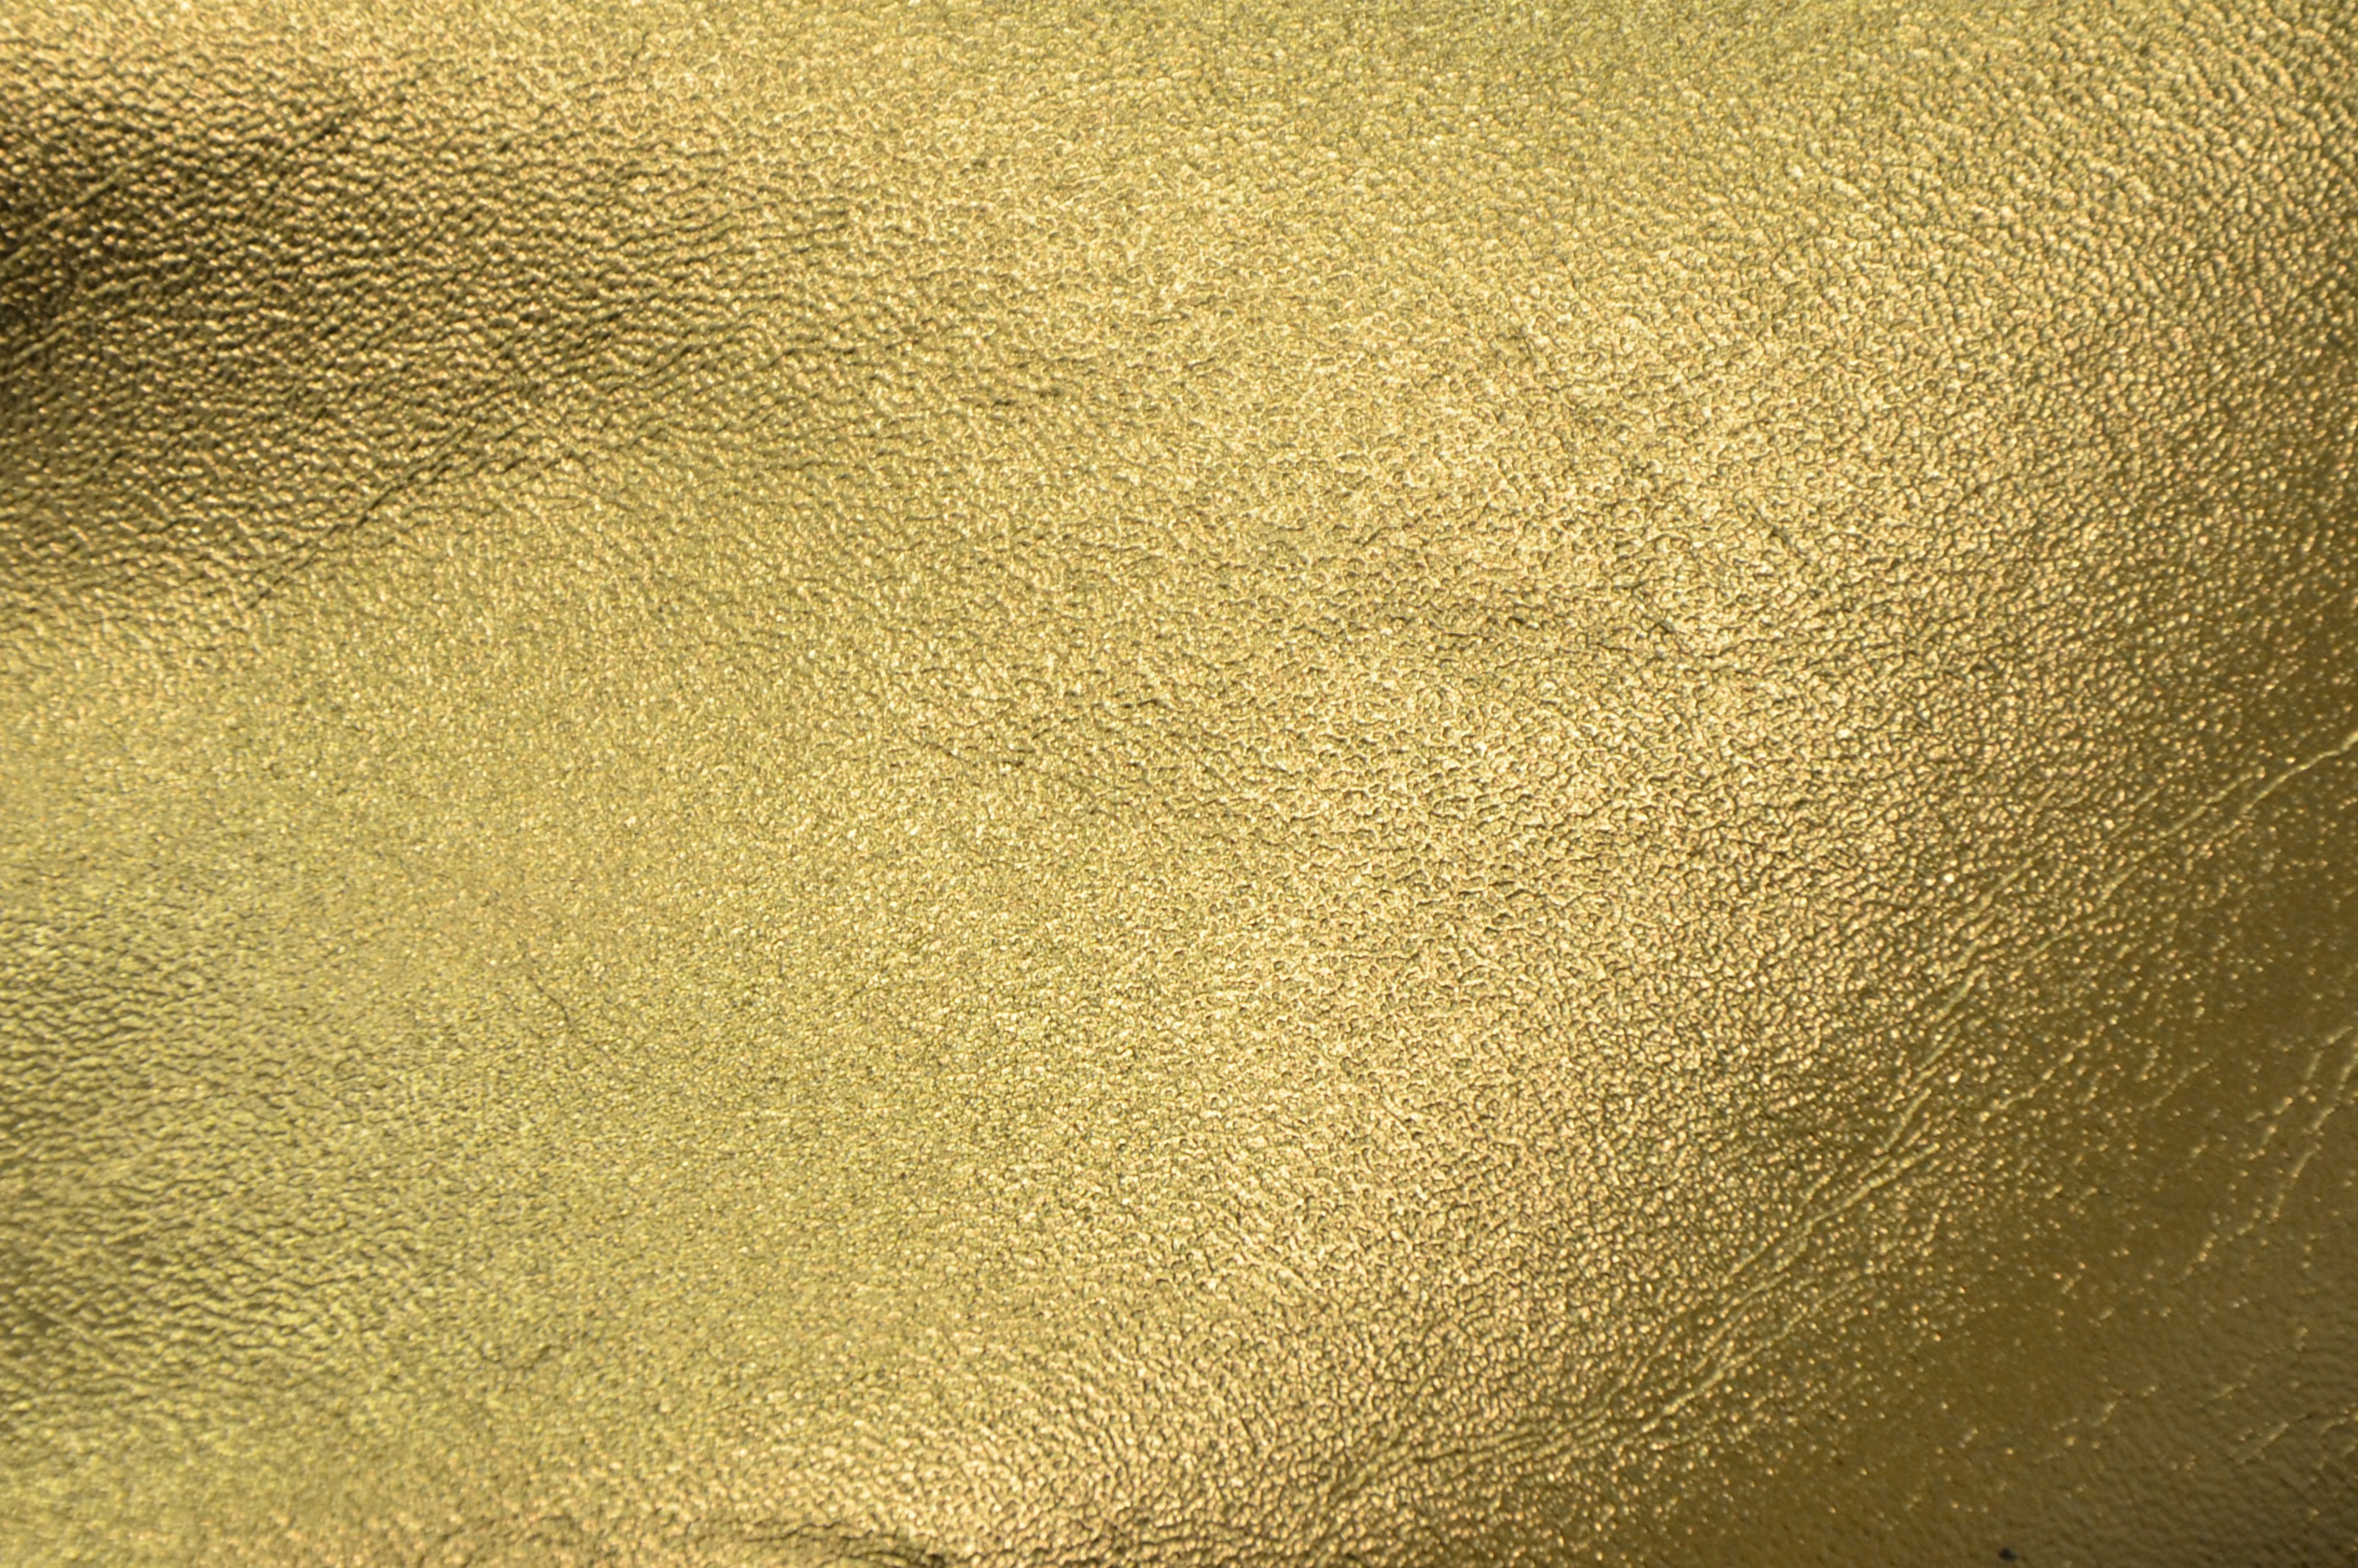 Shiny Gold Metallic Wallpaper Metallic gold 3200x2128